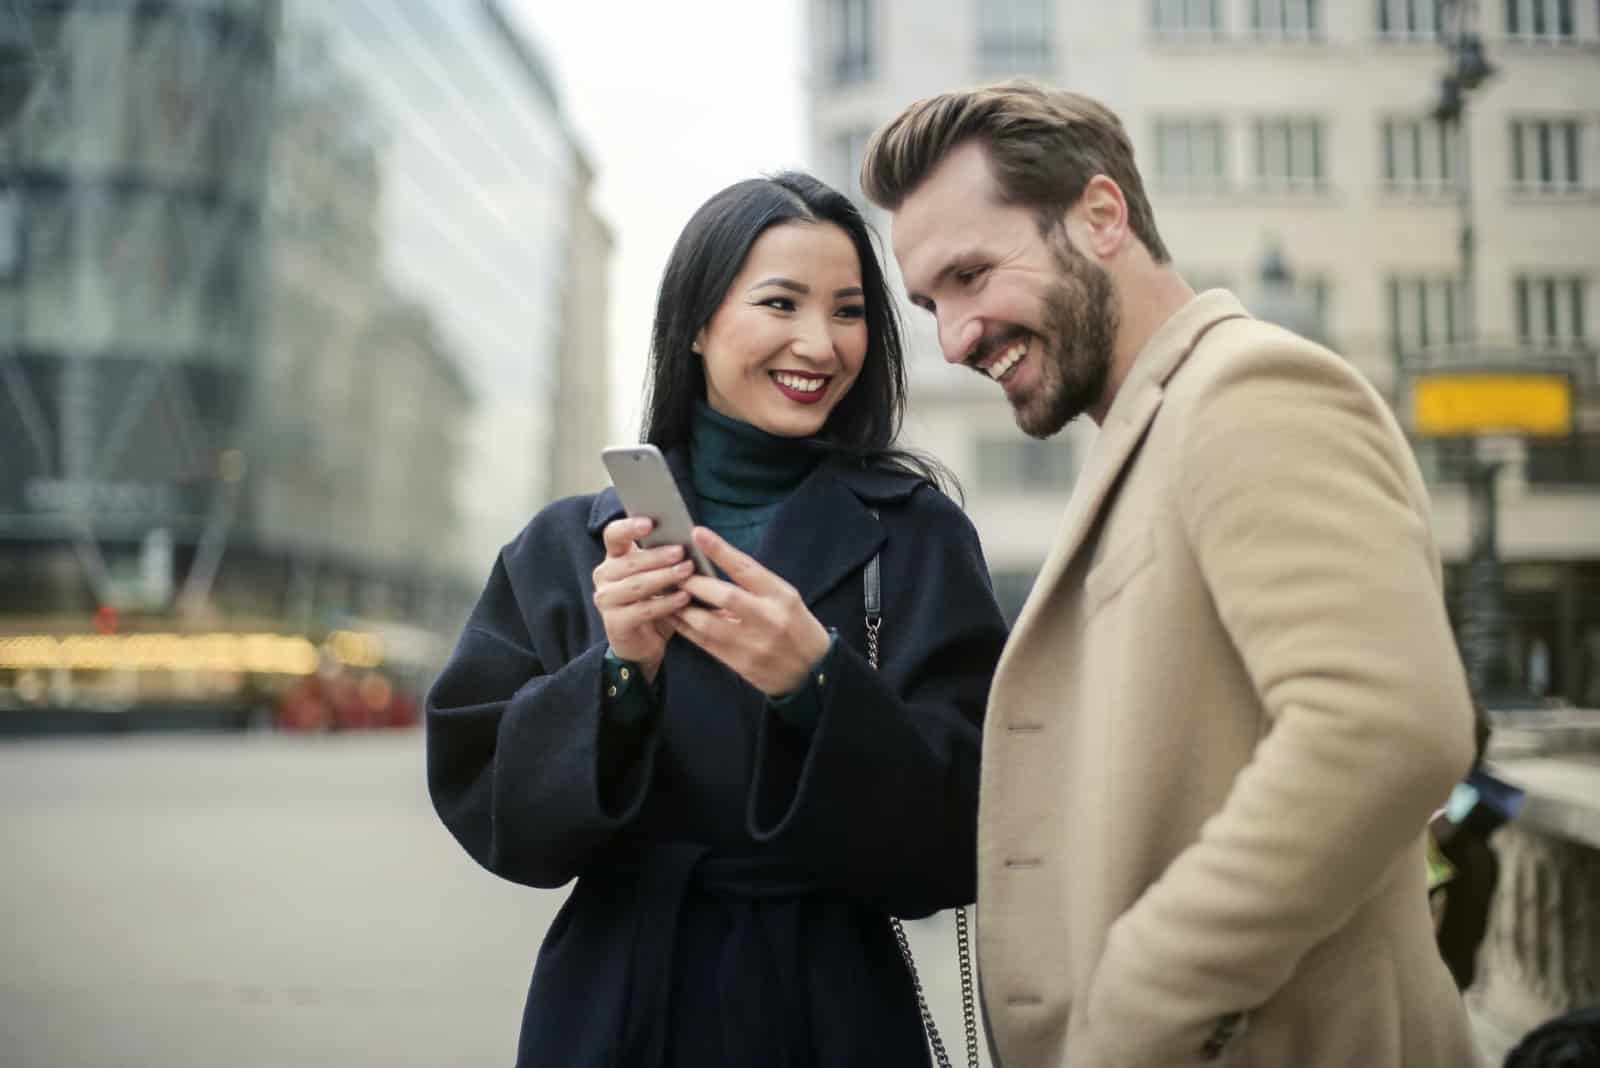 man and woman looking at phone while standing on the street